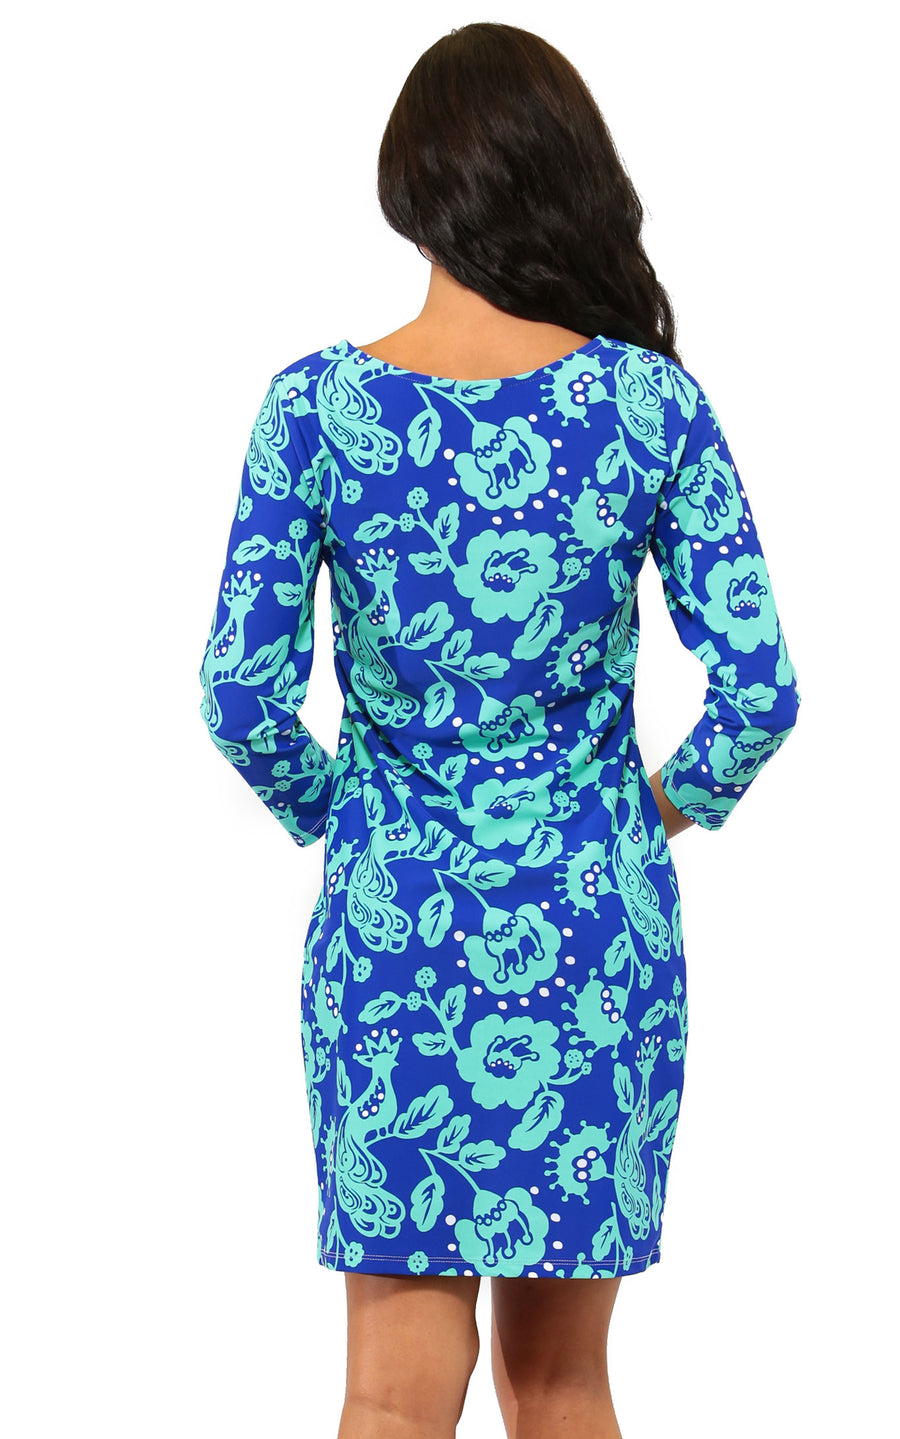 All For Color-Birds of a Feather Lakeside Drive Crew Neck Shift - FINAL SALE-Dresses